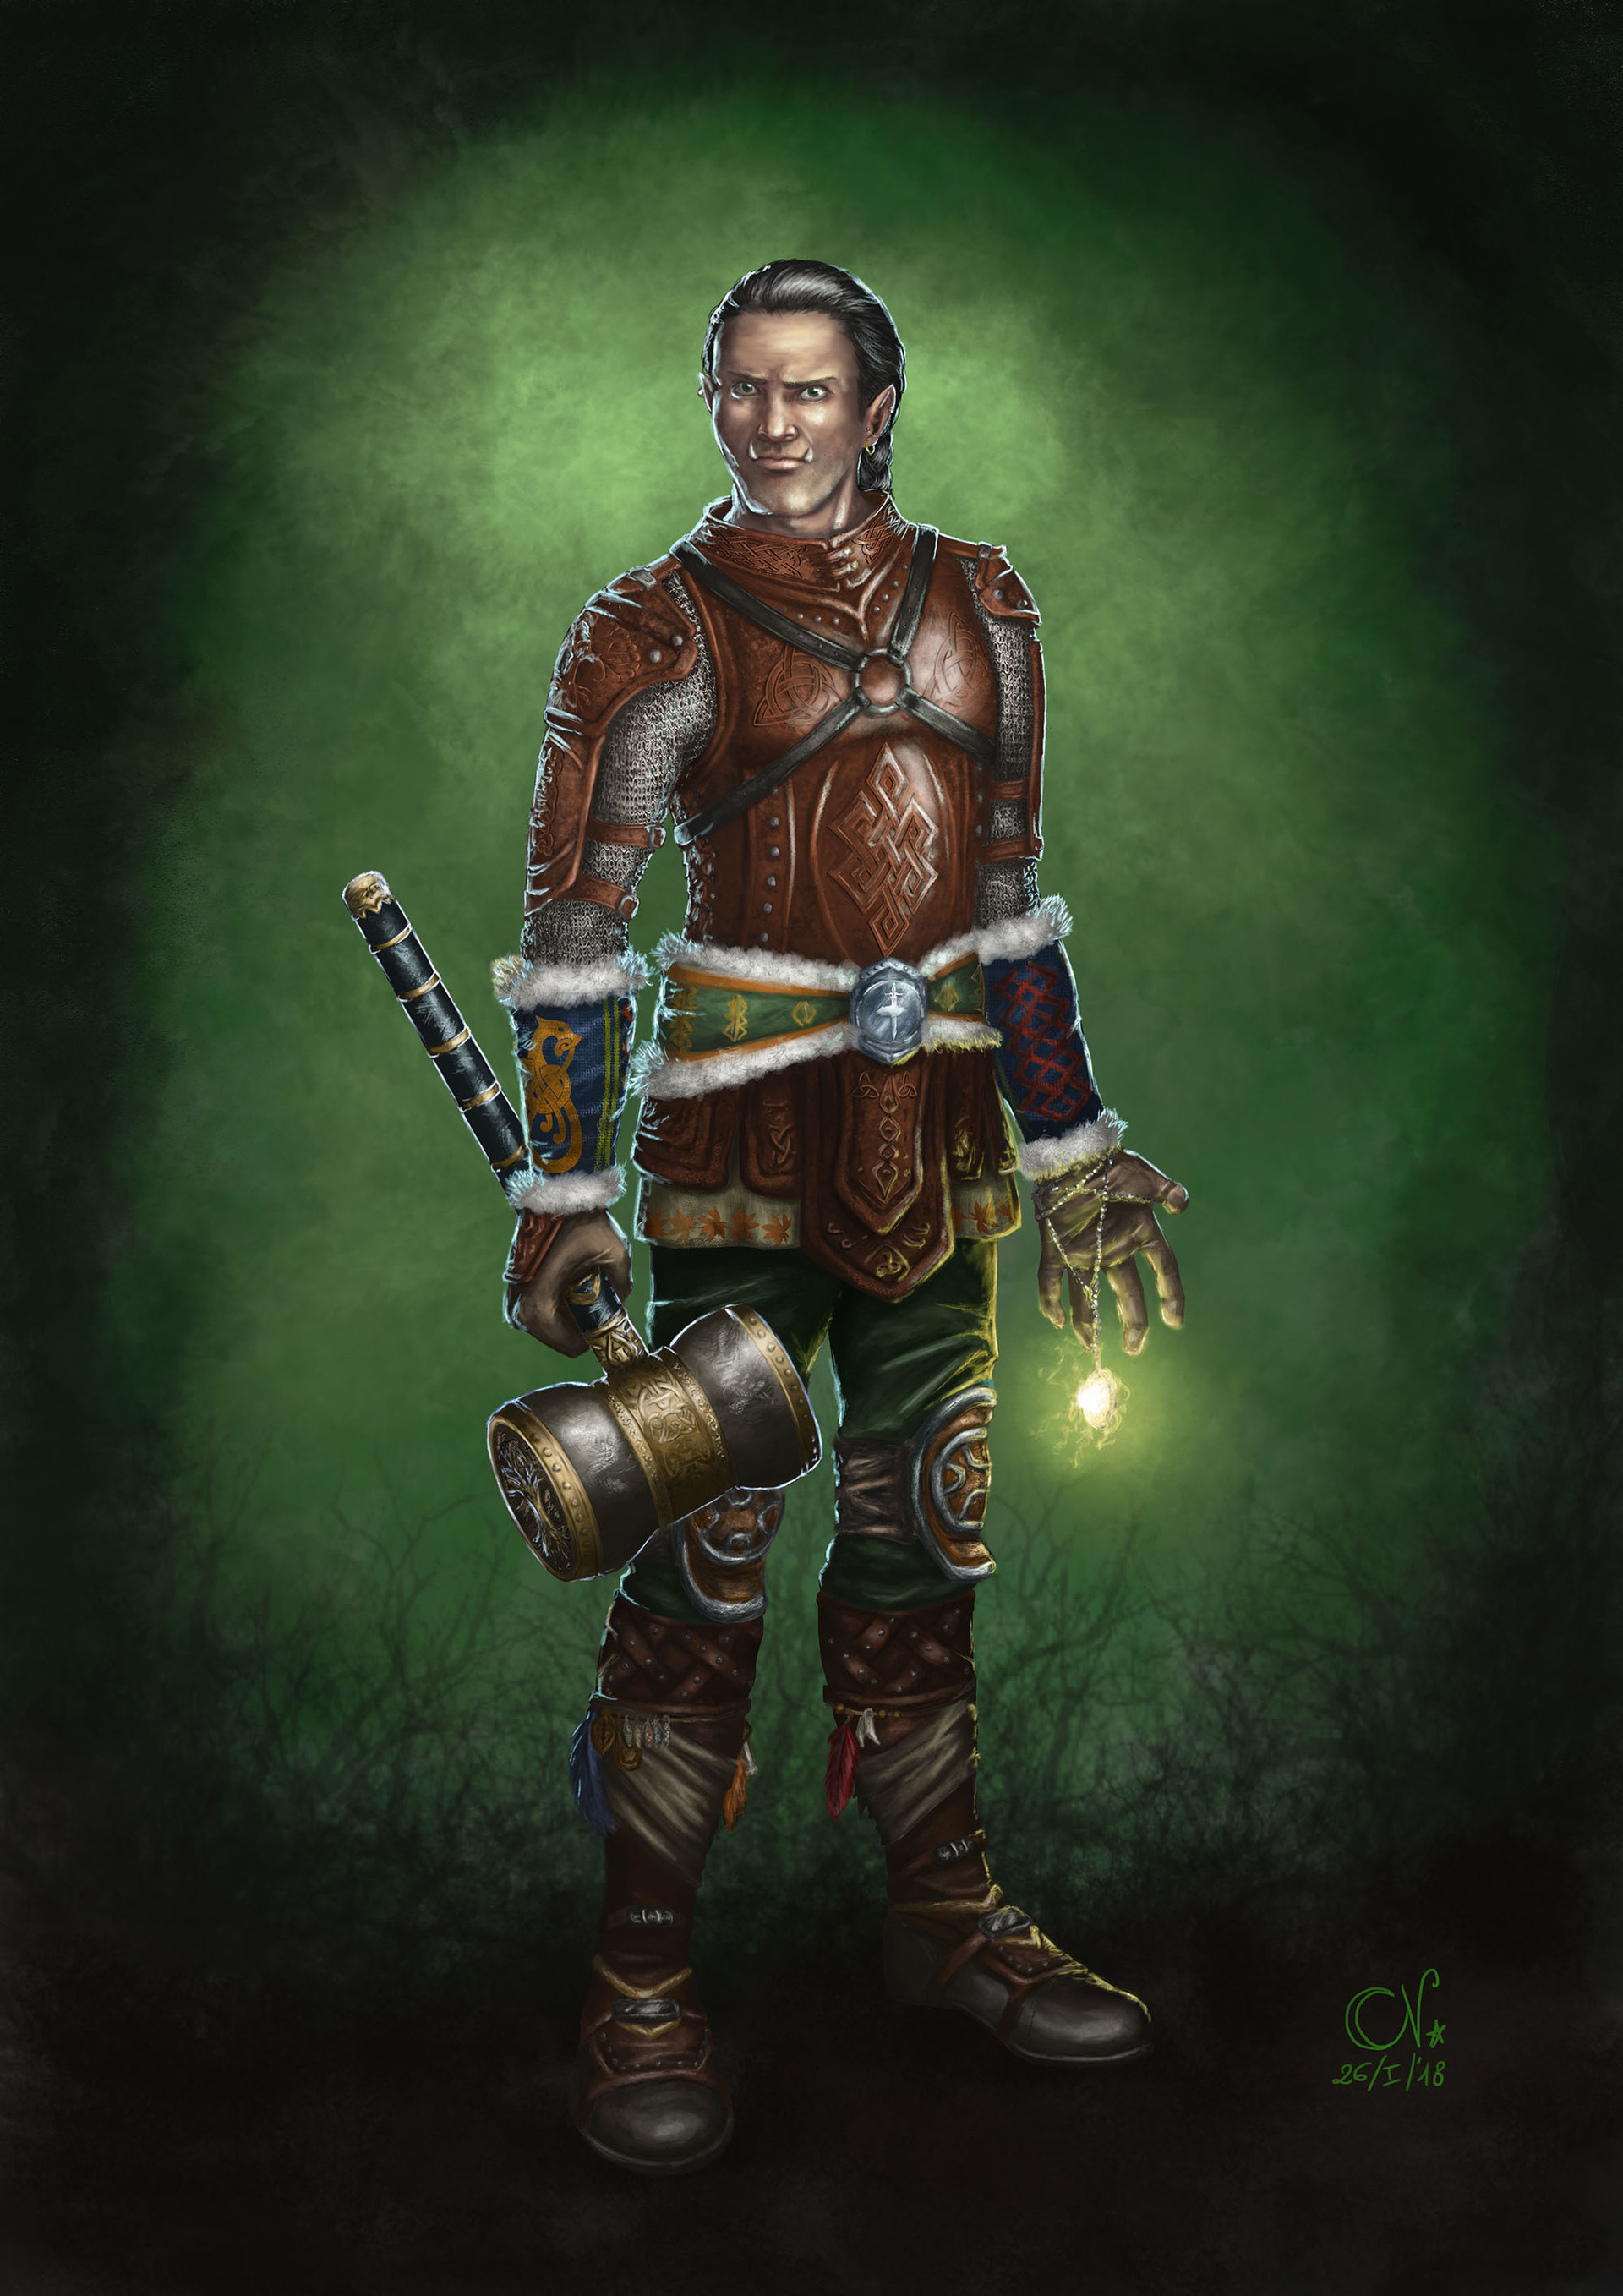 Armored Half Orc Hero Concept Art